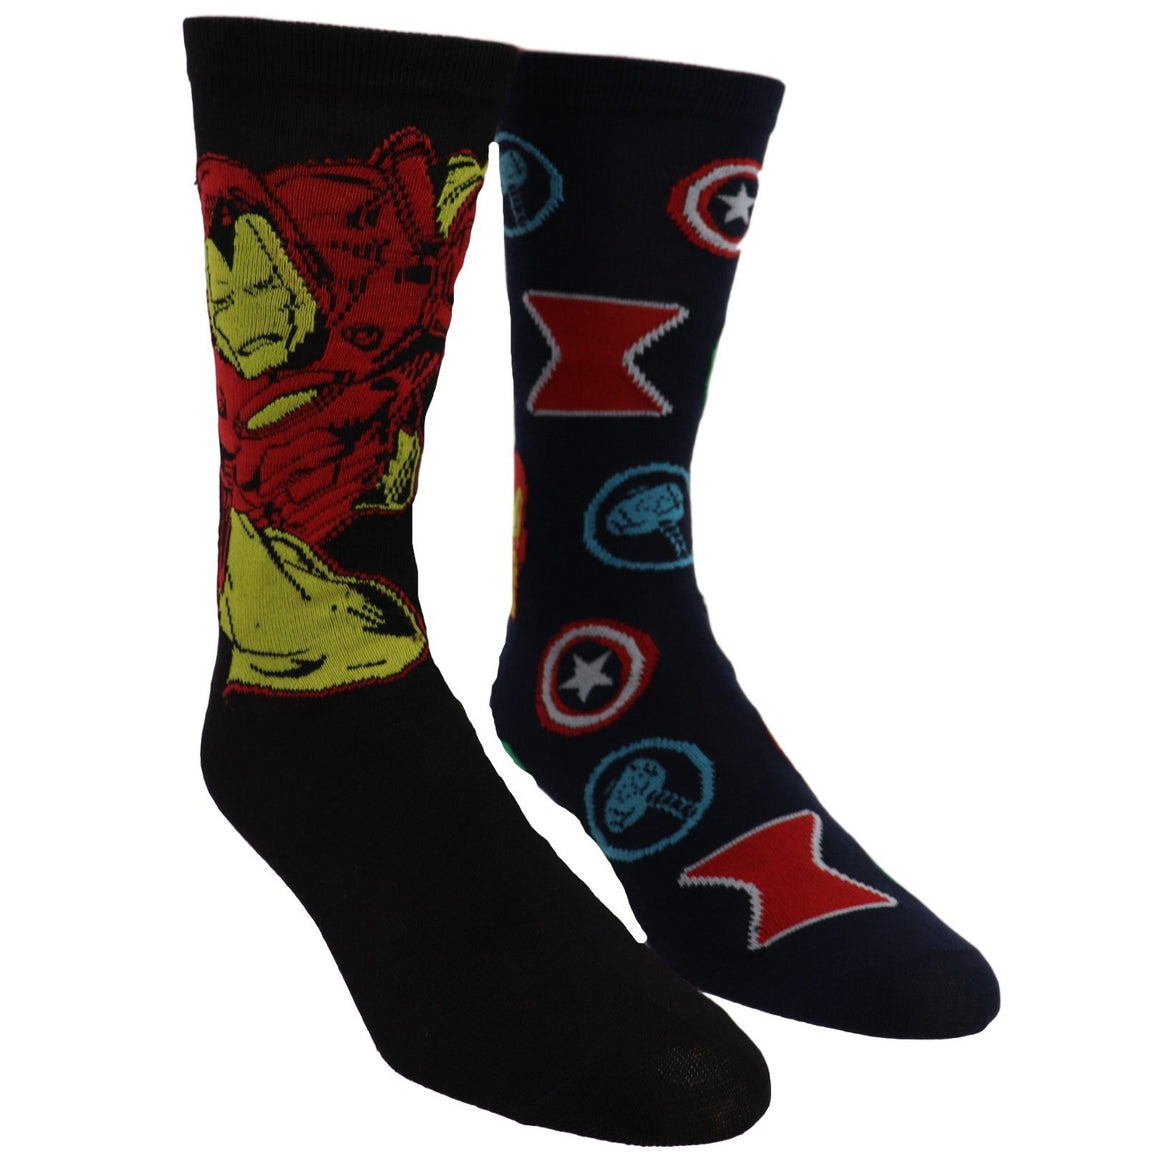 2 Pair Pack Marvel Iron Man Avengers Socks - The Sock Spot